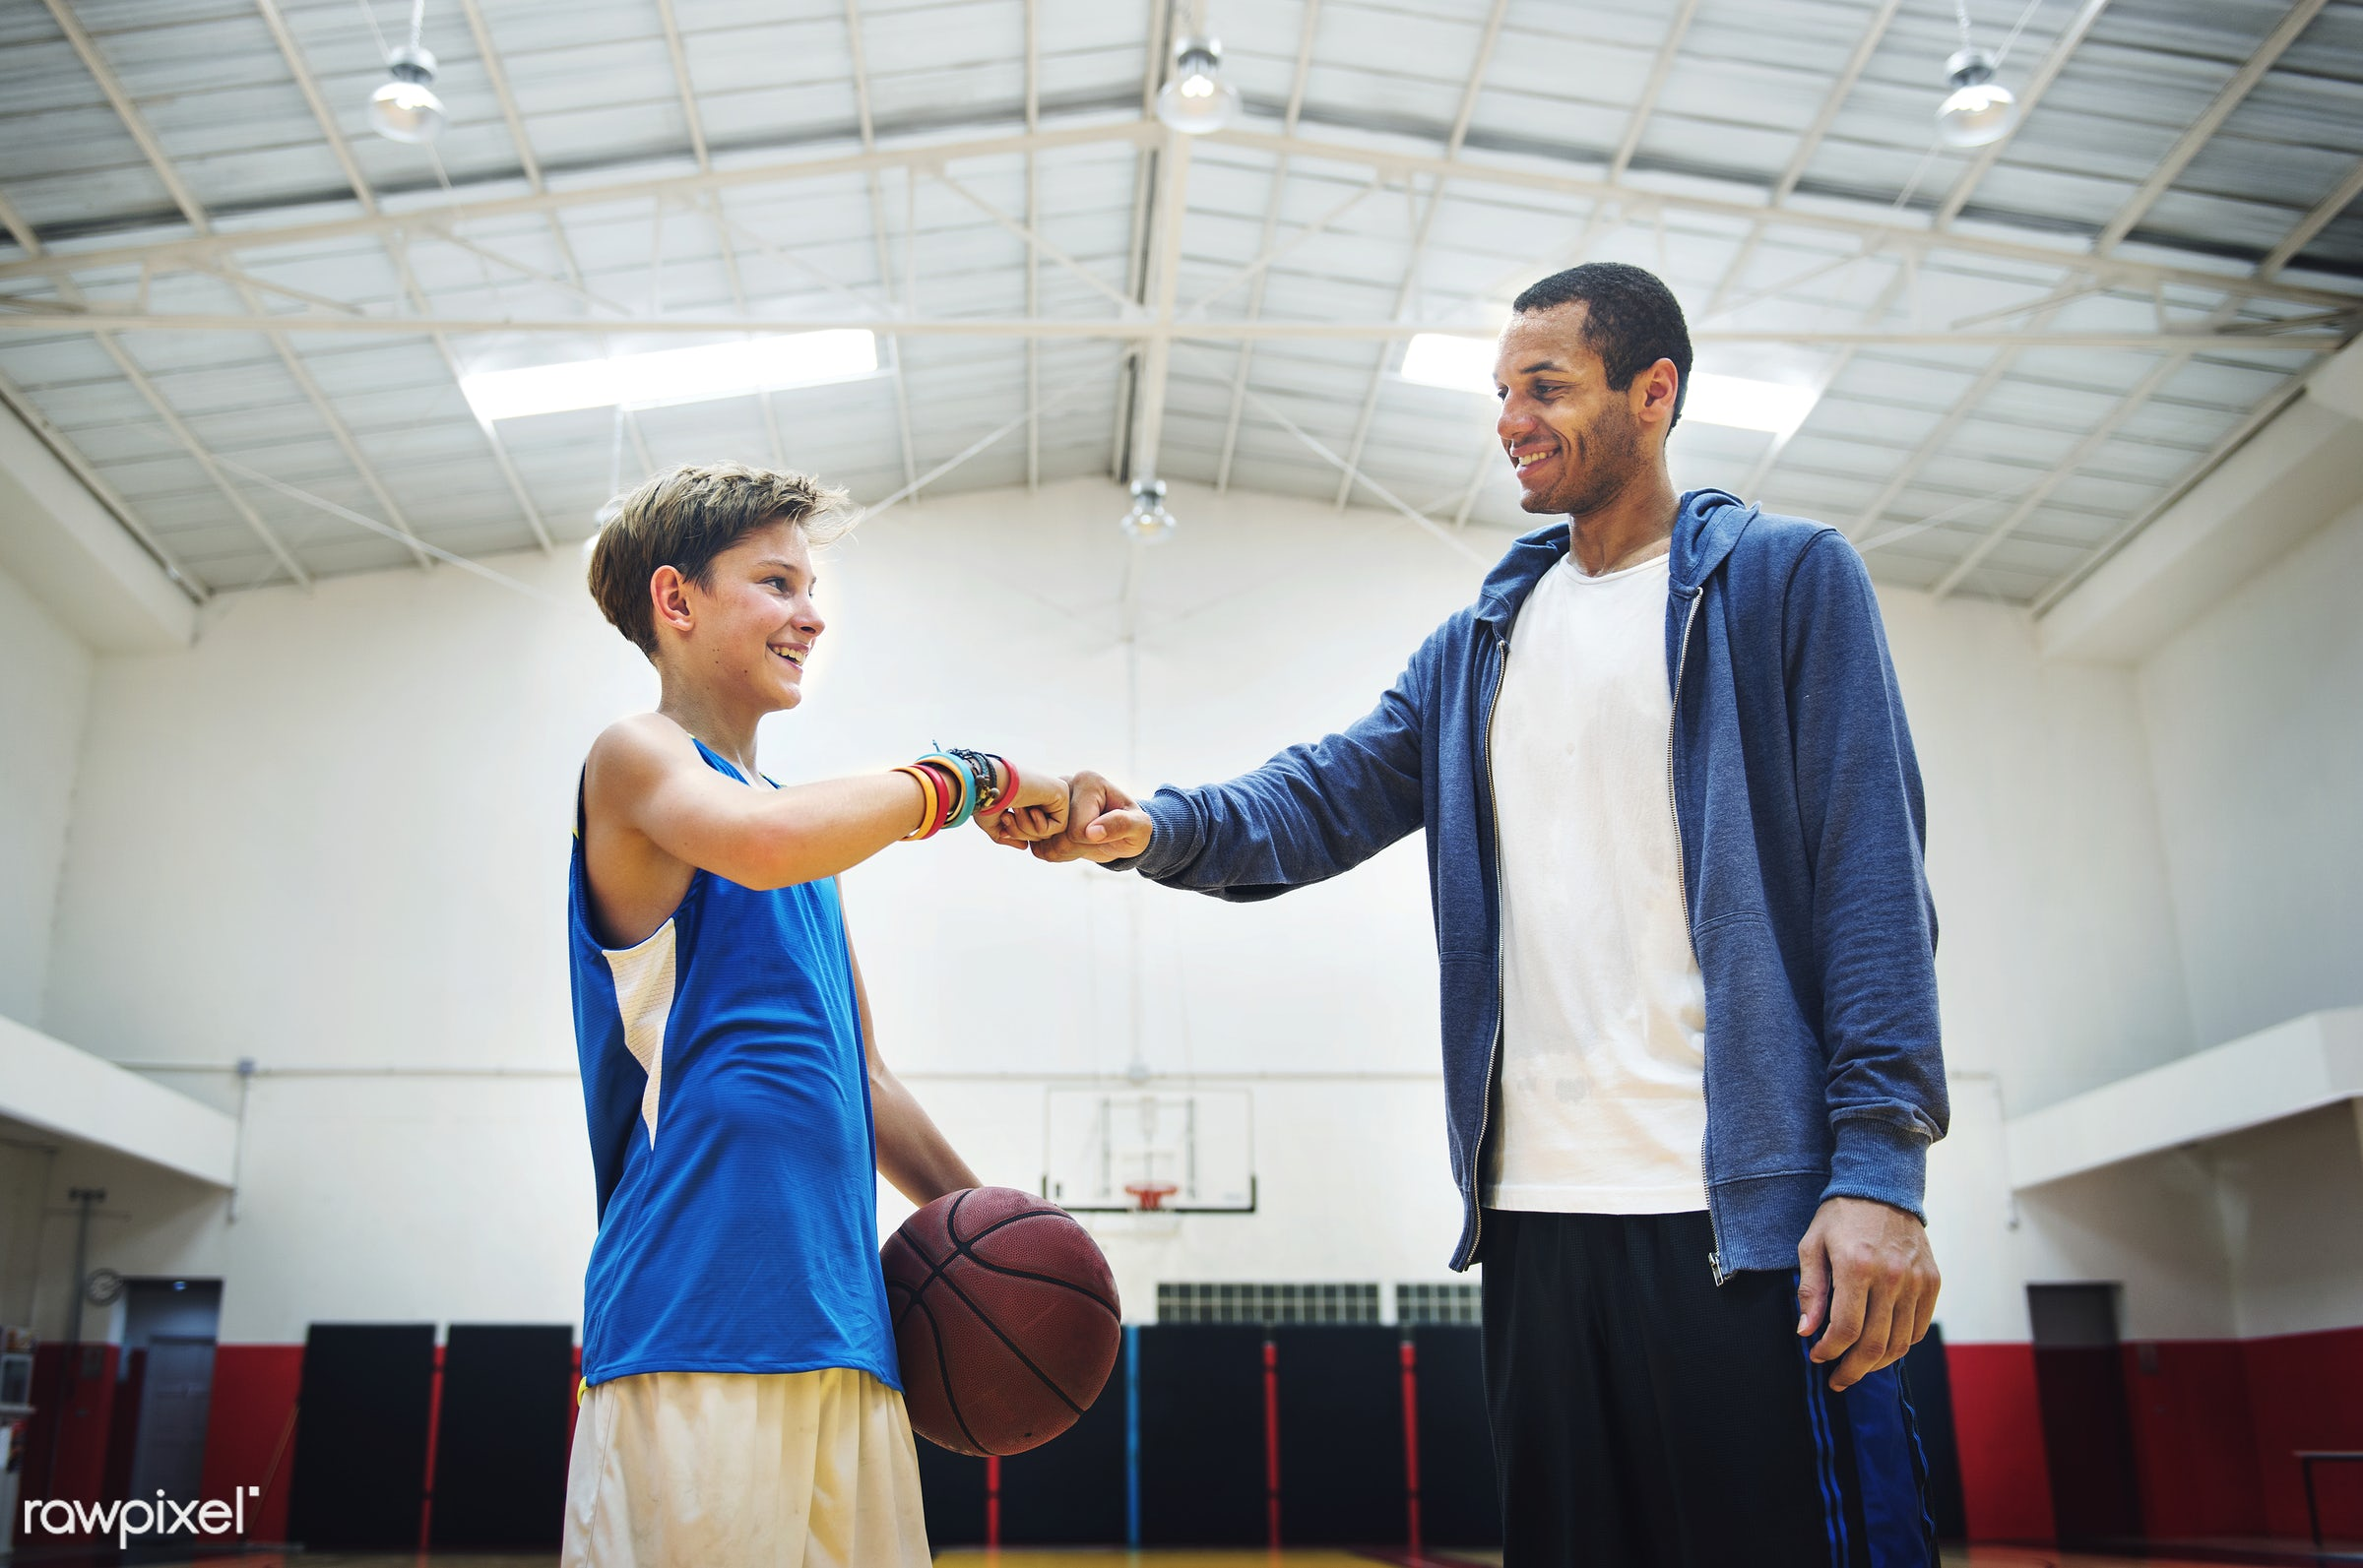 basketball, sport, activity, boy, caucasian, coach, coaching, court, exercise, friends, game, man, play, player, practice,...